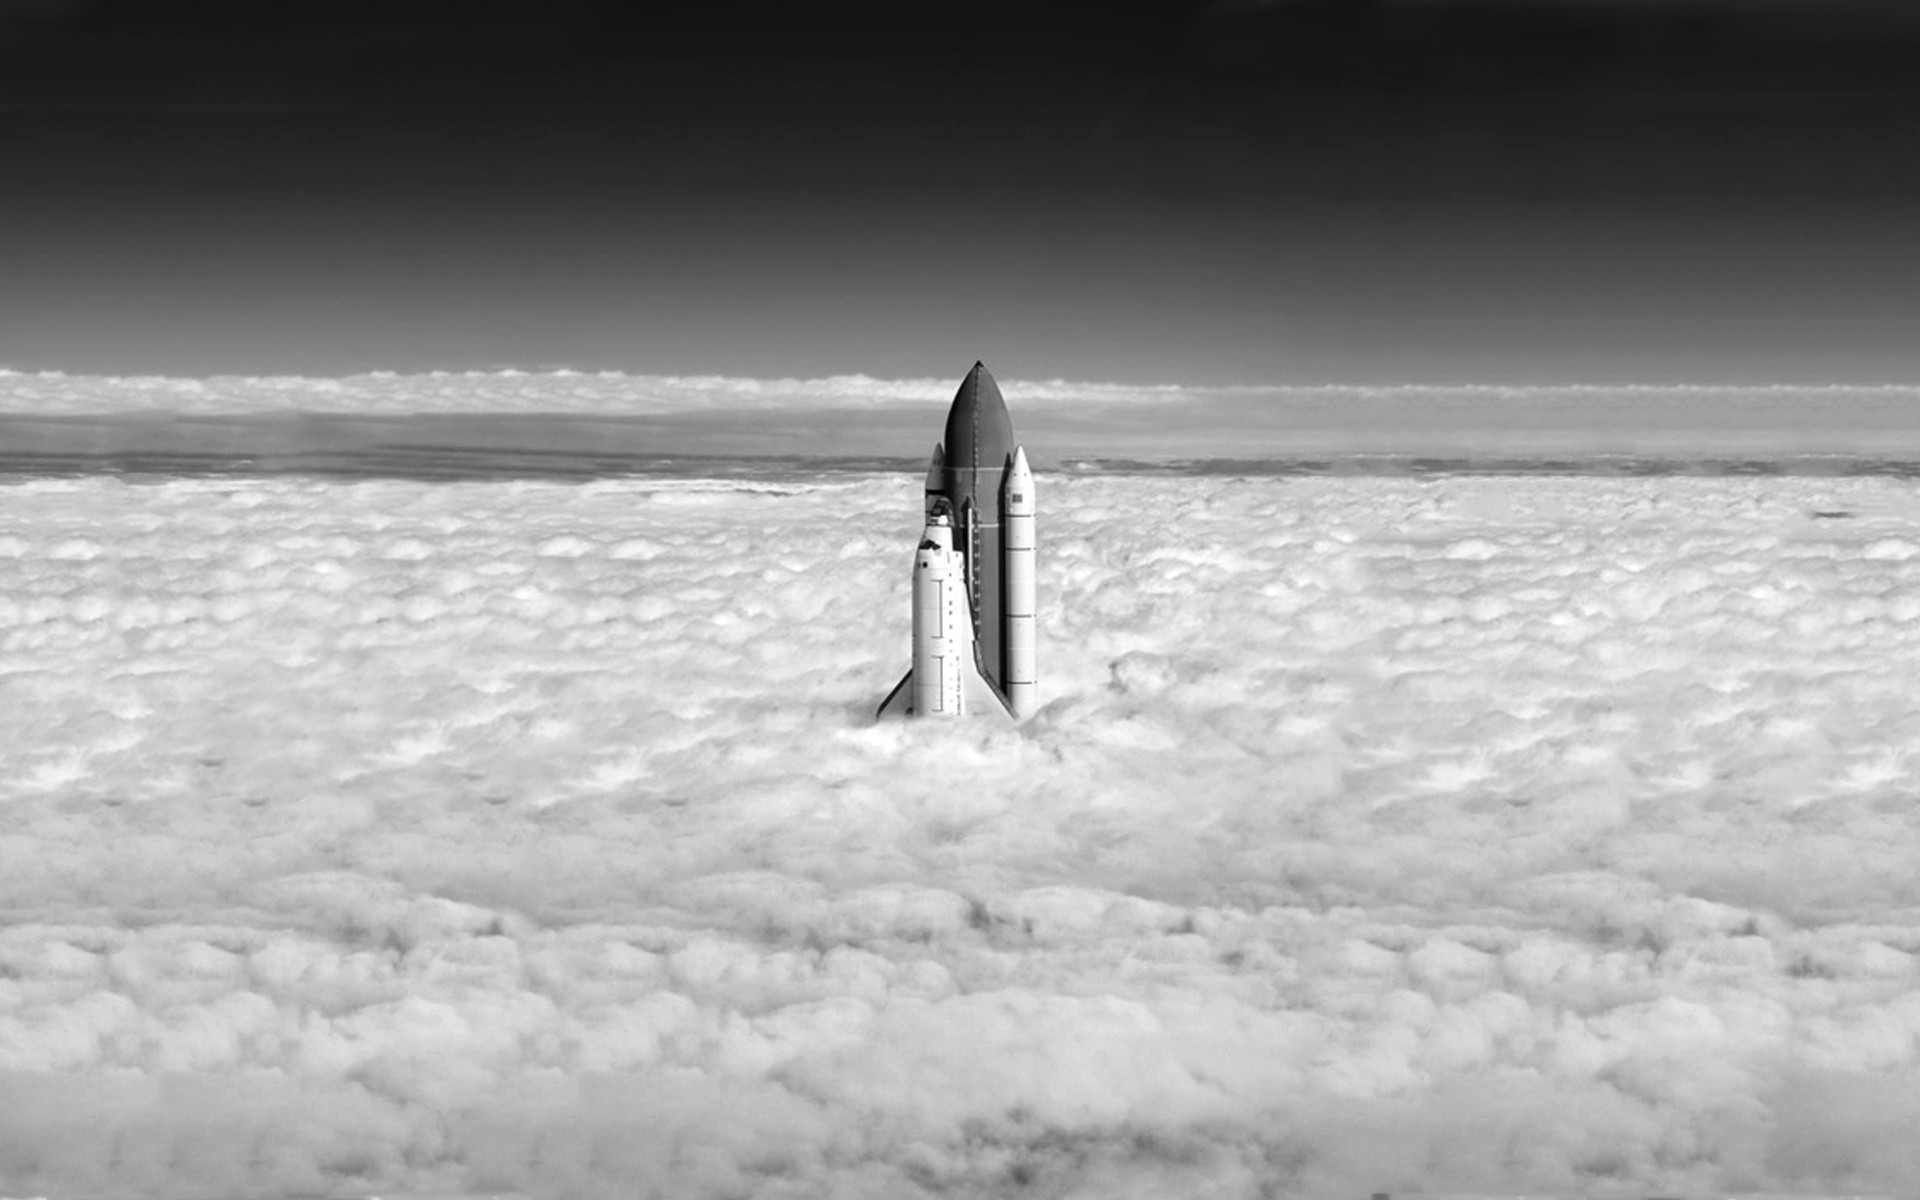 Desktop and Mobile Wallpaper Space shuttle, Above the